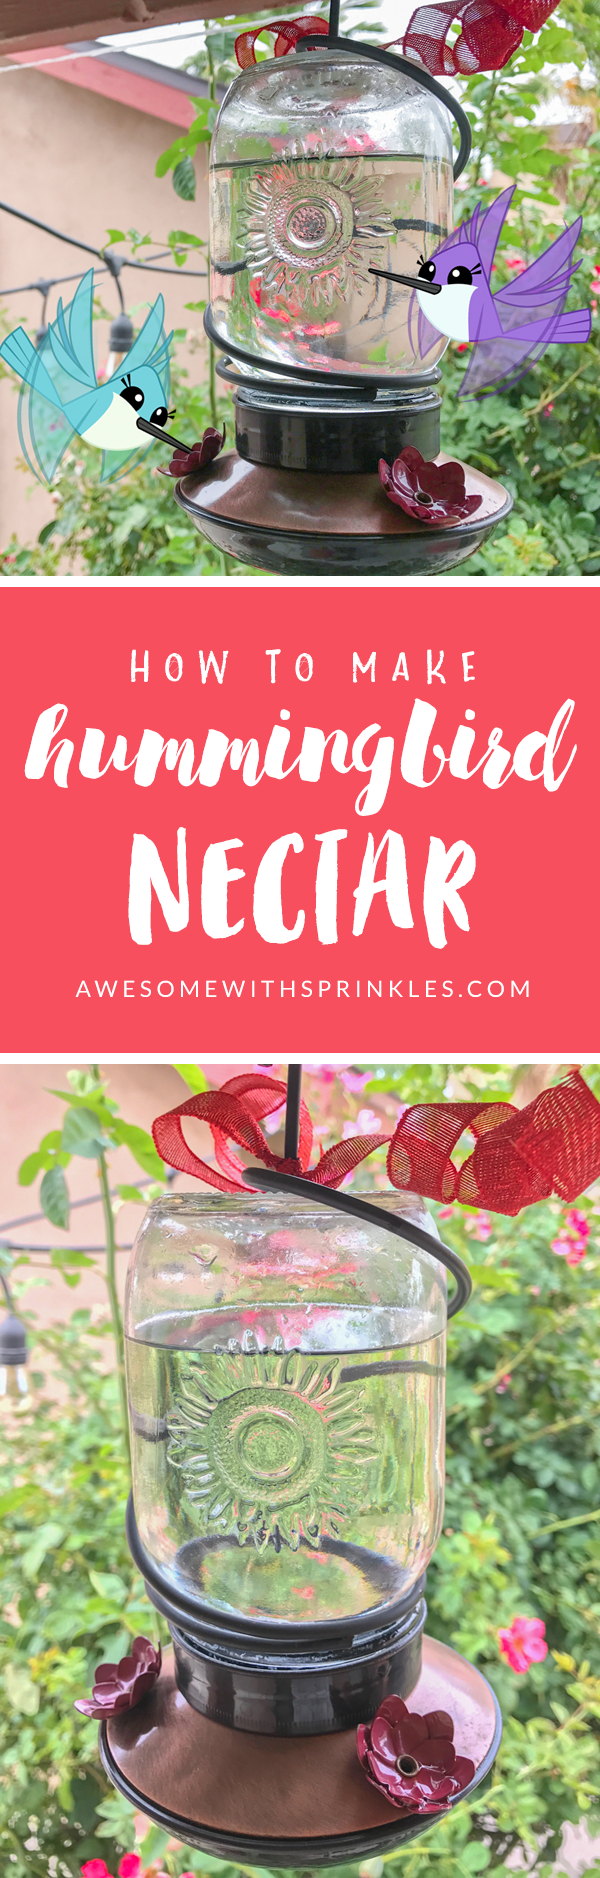 How to Make Homemade Hummingbird Nectar + Tips for cleaning your feeder | Awesome with Sprinkles